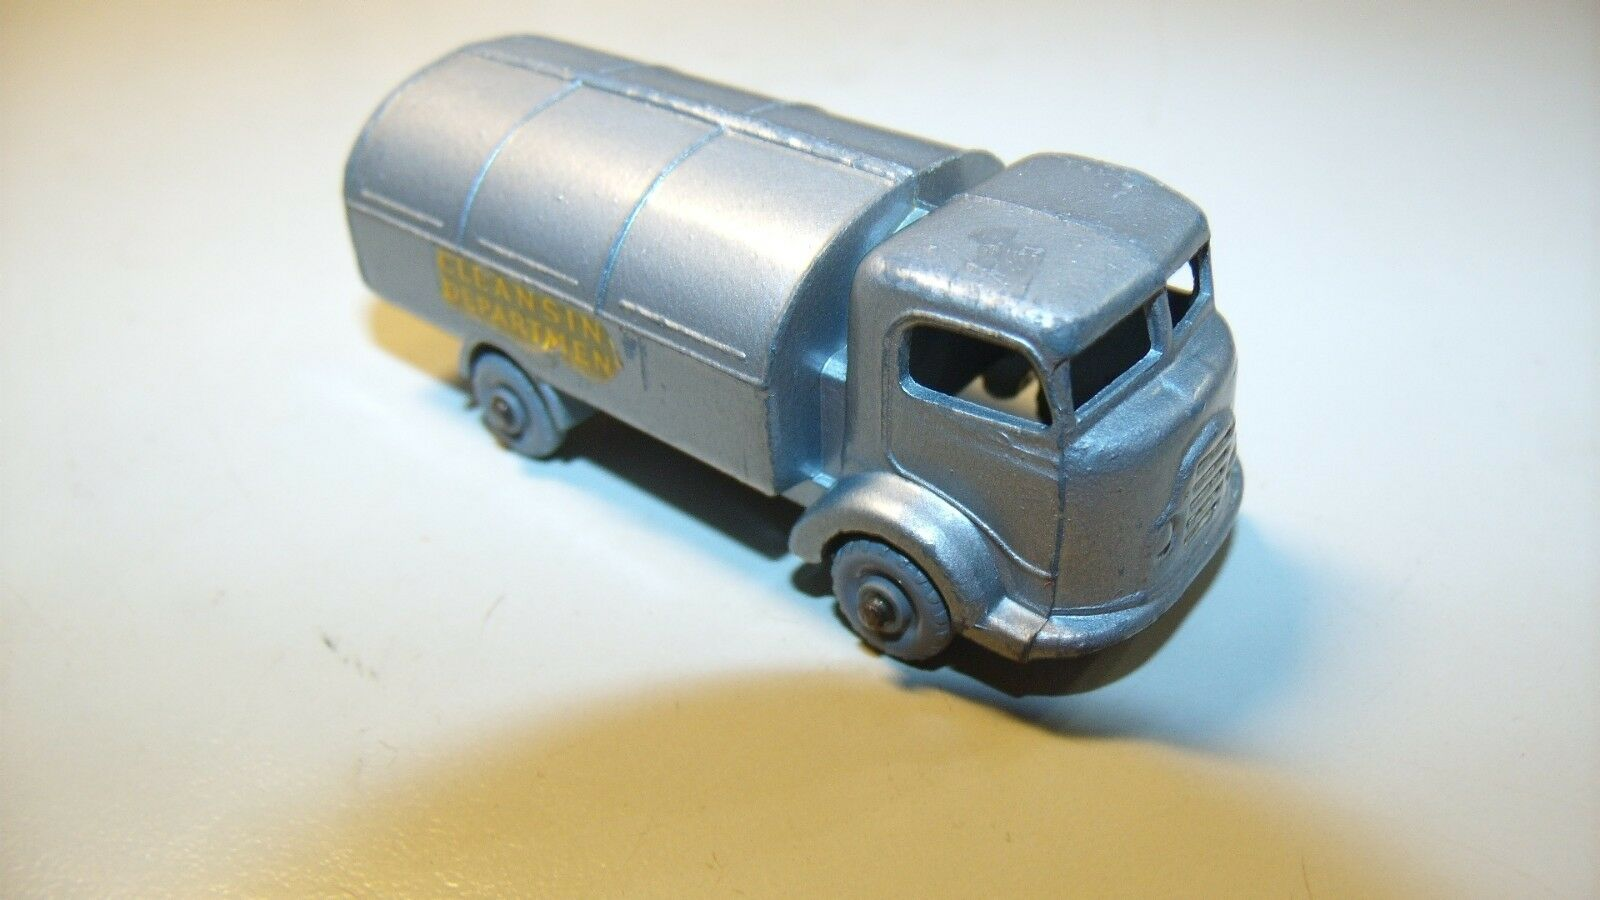 MATCHBOX Lesney England Camion refuse collector 38 collection vintage